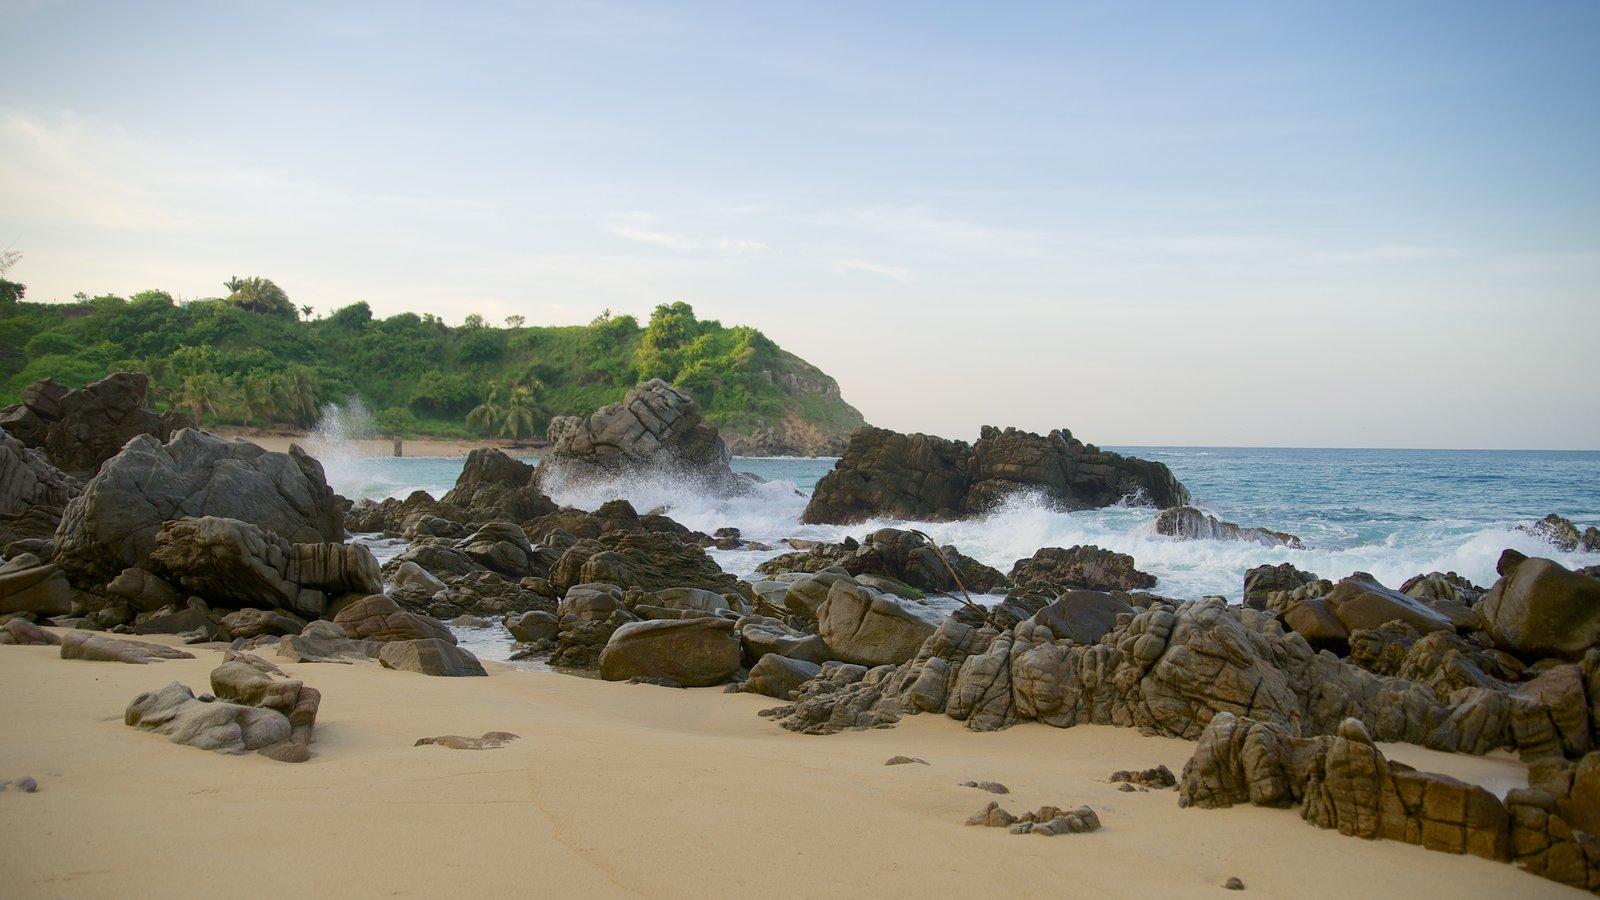 Bacocho Beach featuring a sandy beach and rugged coastline